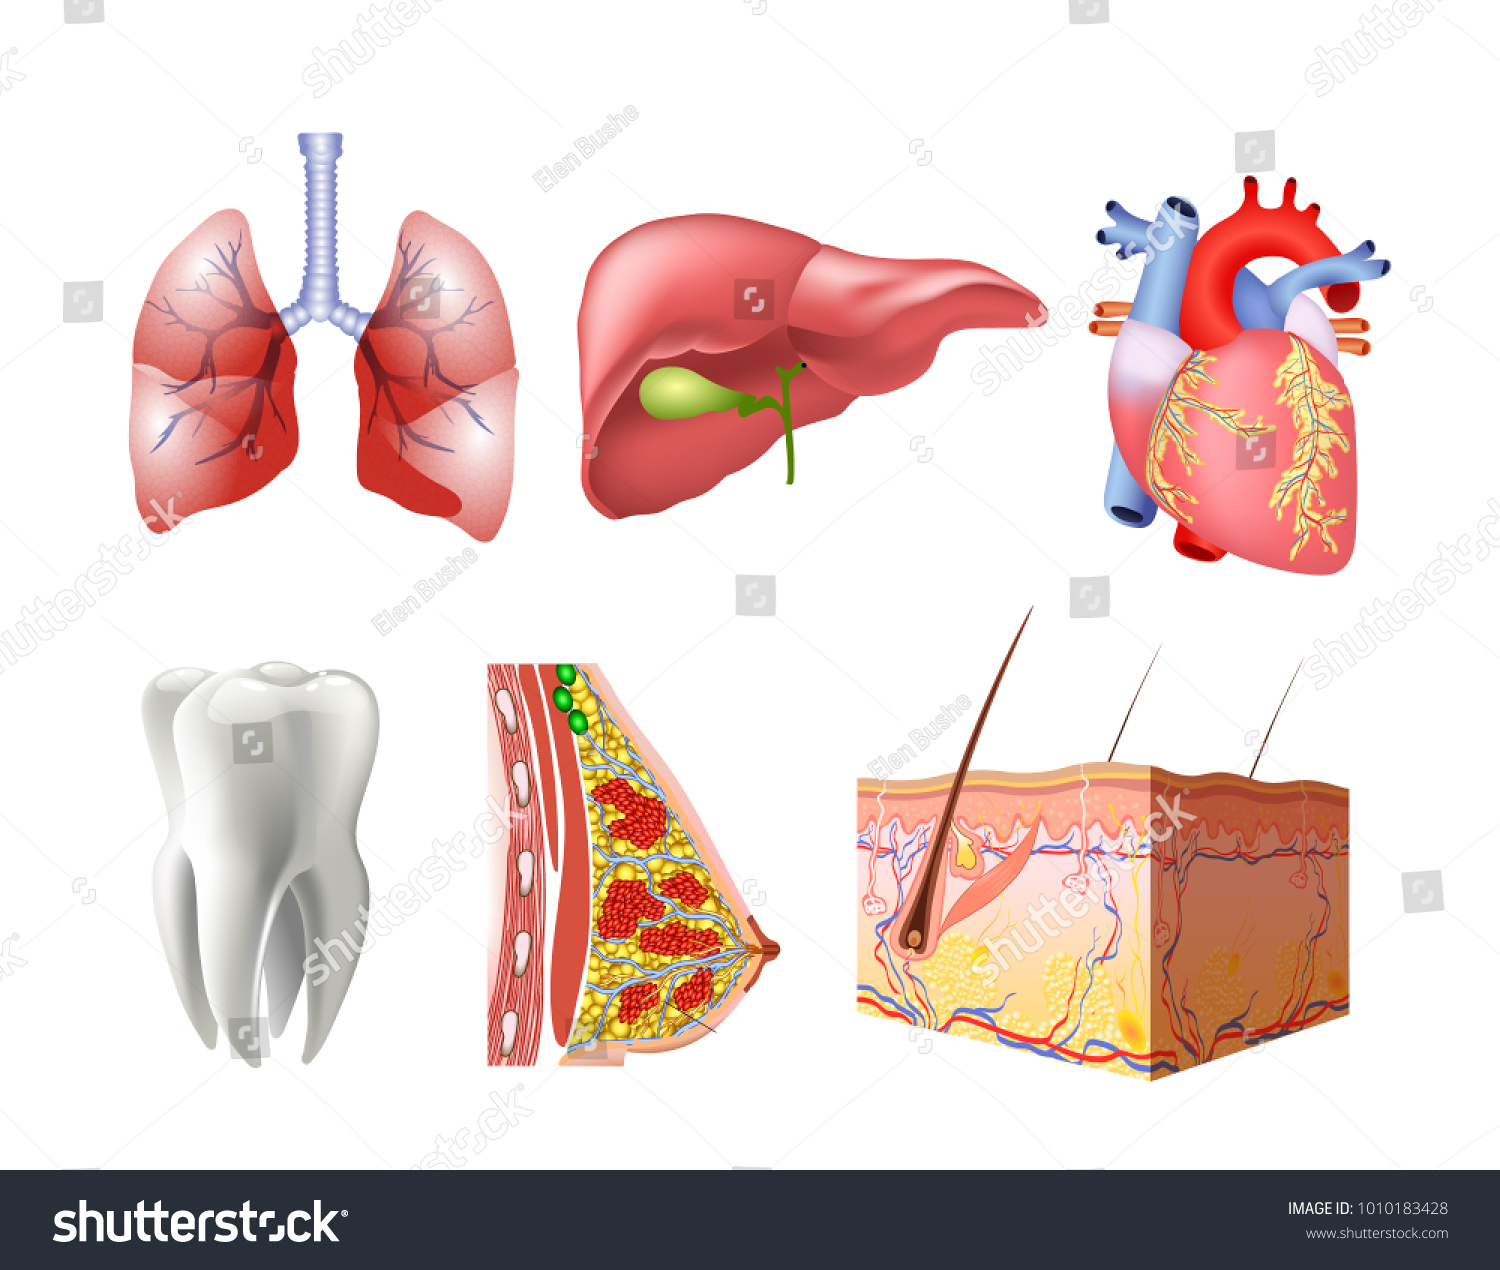 Different Flat Human Organs Set Brain Stock Vector Royalty Free Torso Diagram With Heart Lungs Stomach Bowels Kidneys Isolated